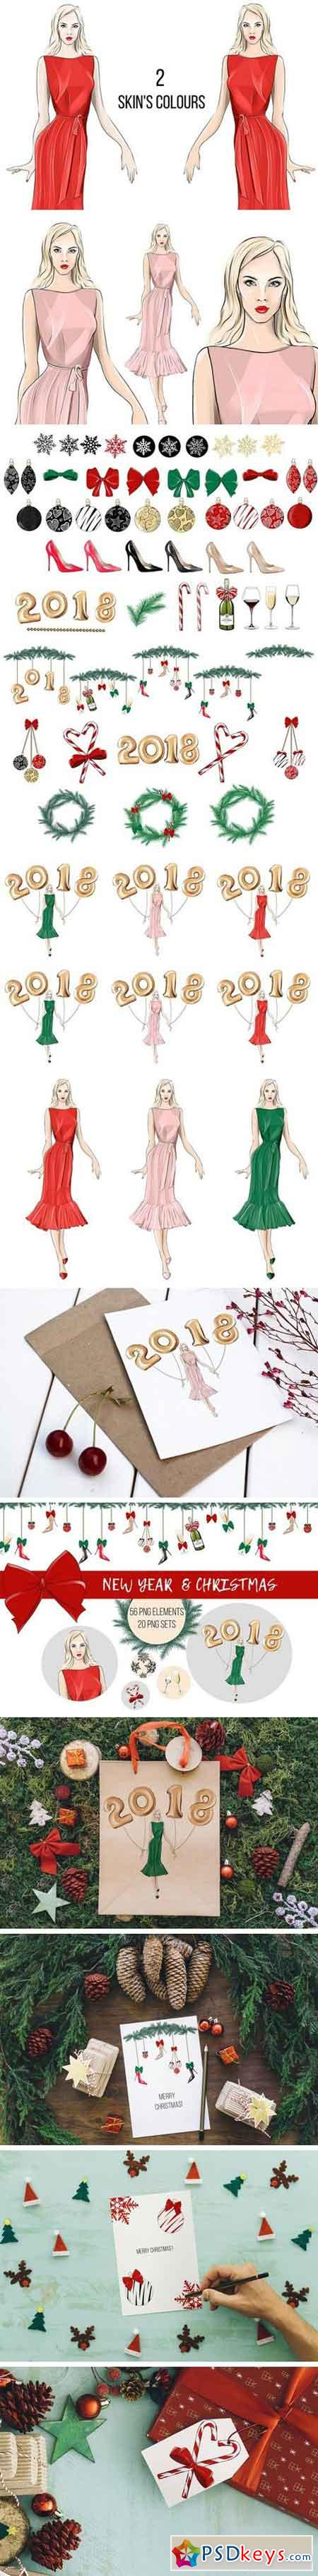 New Year & Christmas Clip Art 2072790